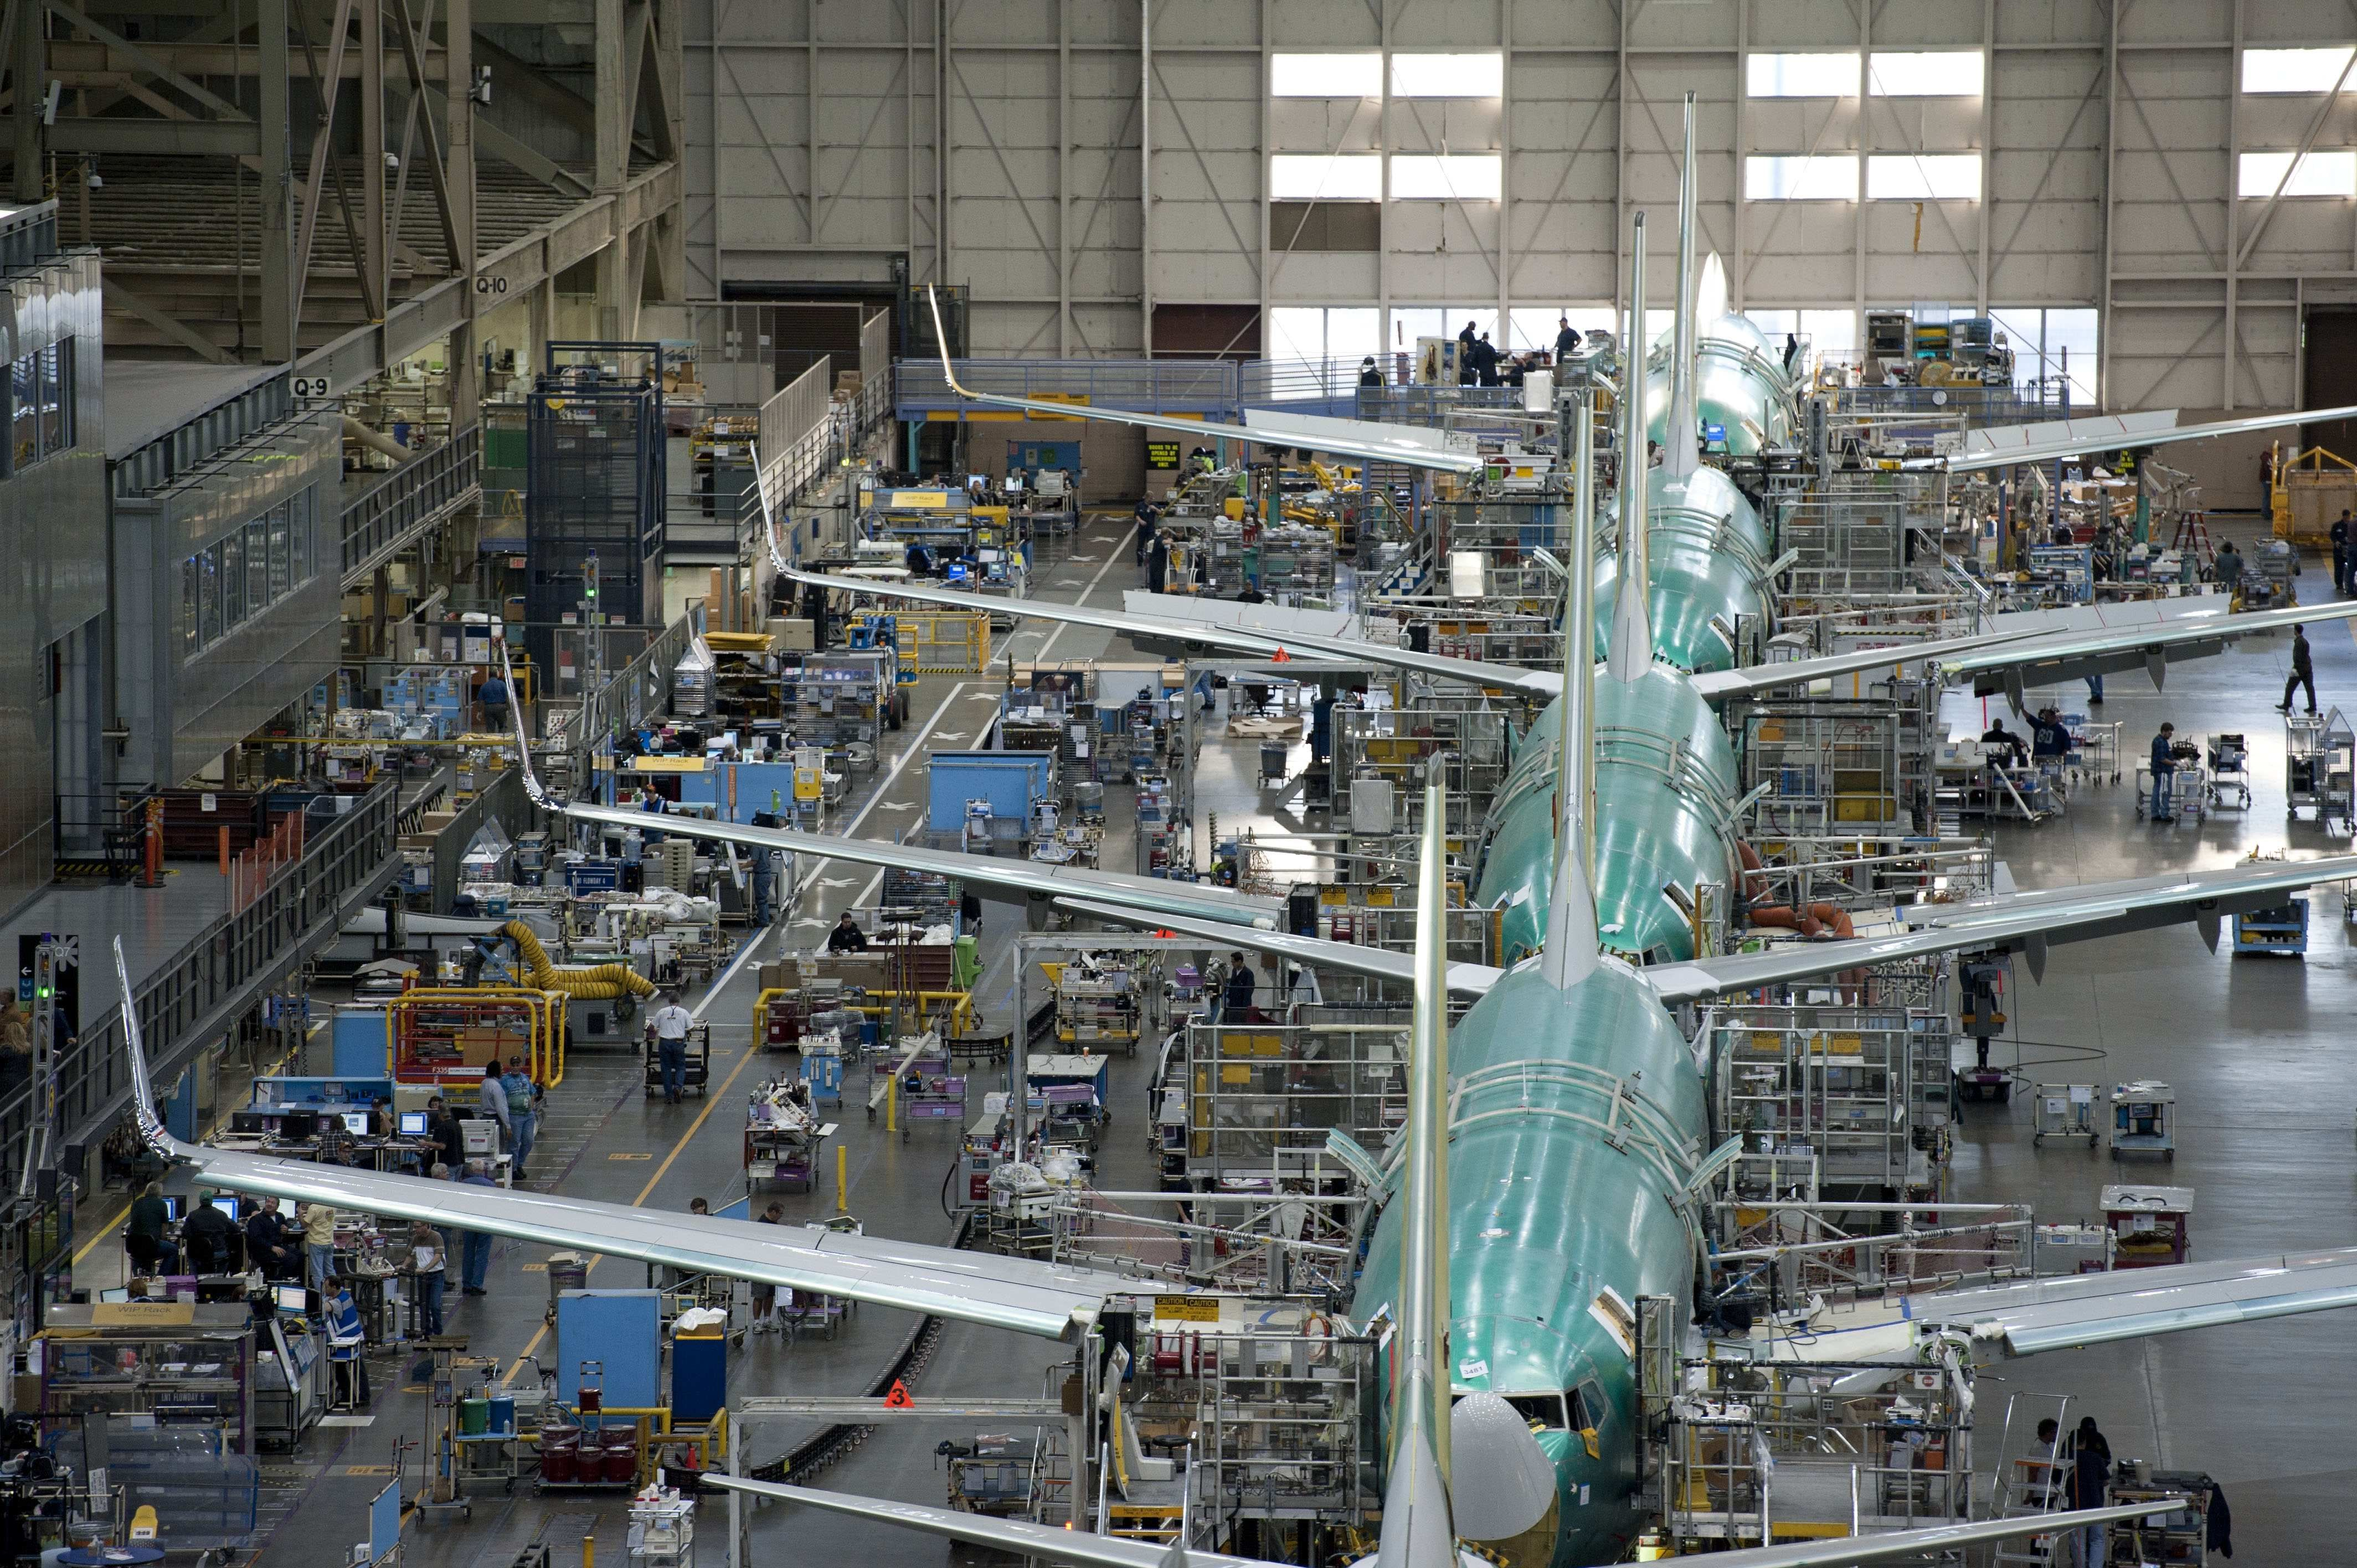 All Boeing 737 final assembly now takes place in Renton